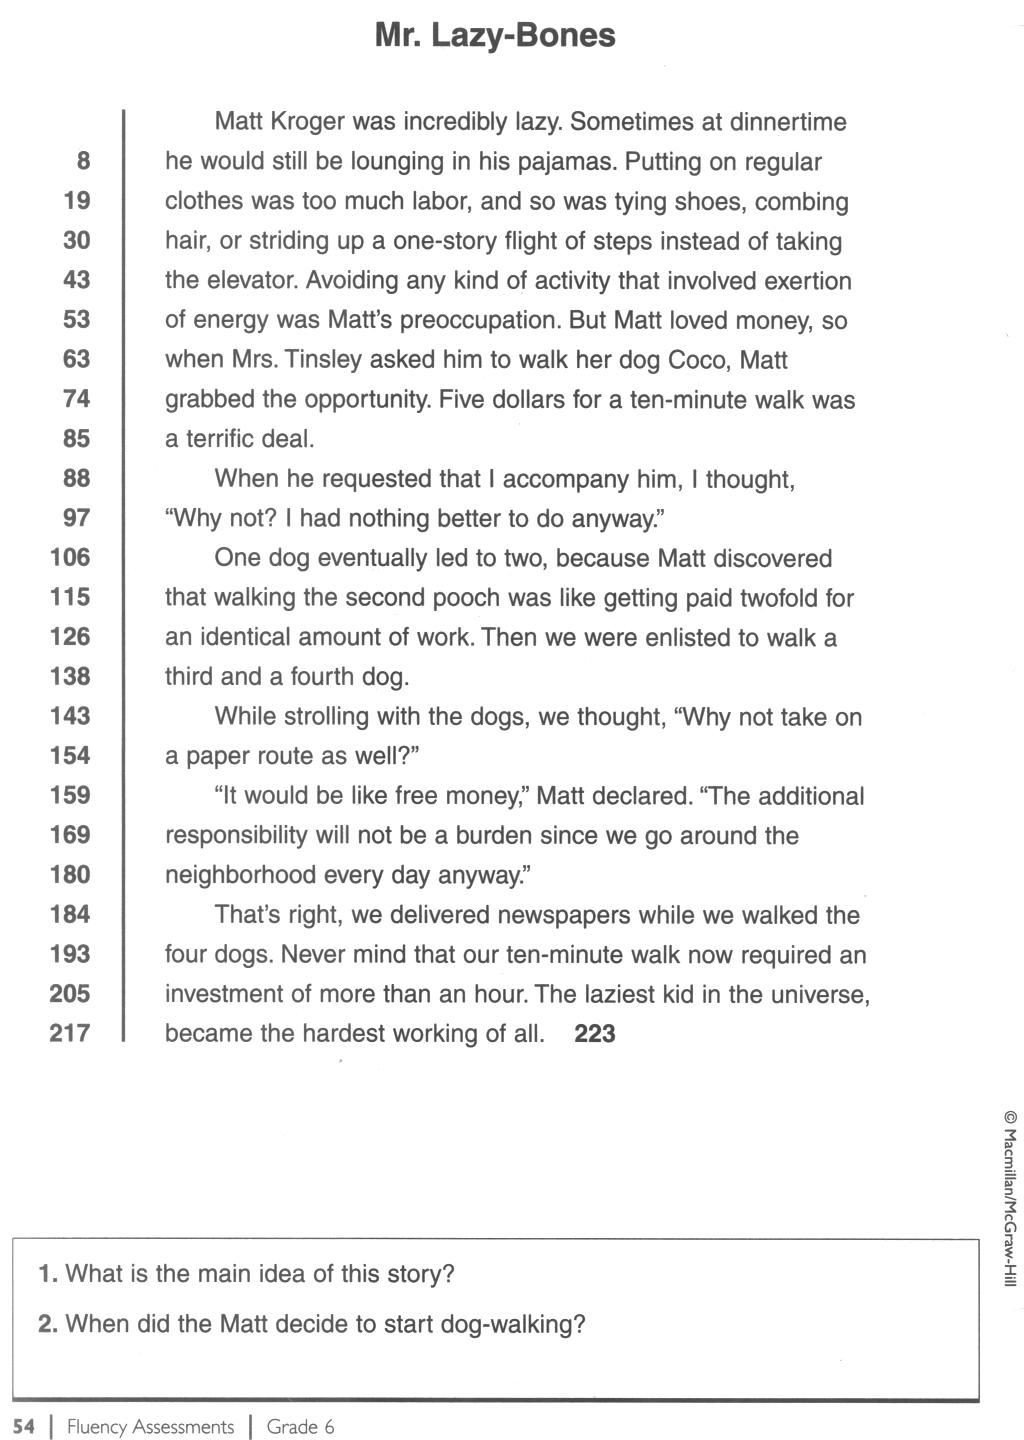 Comprehension Worksheets 6th Grade 6th Fluency Passage 1 1024—1440